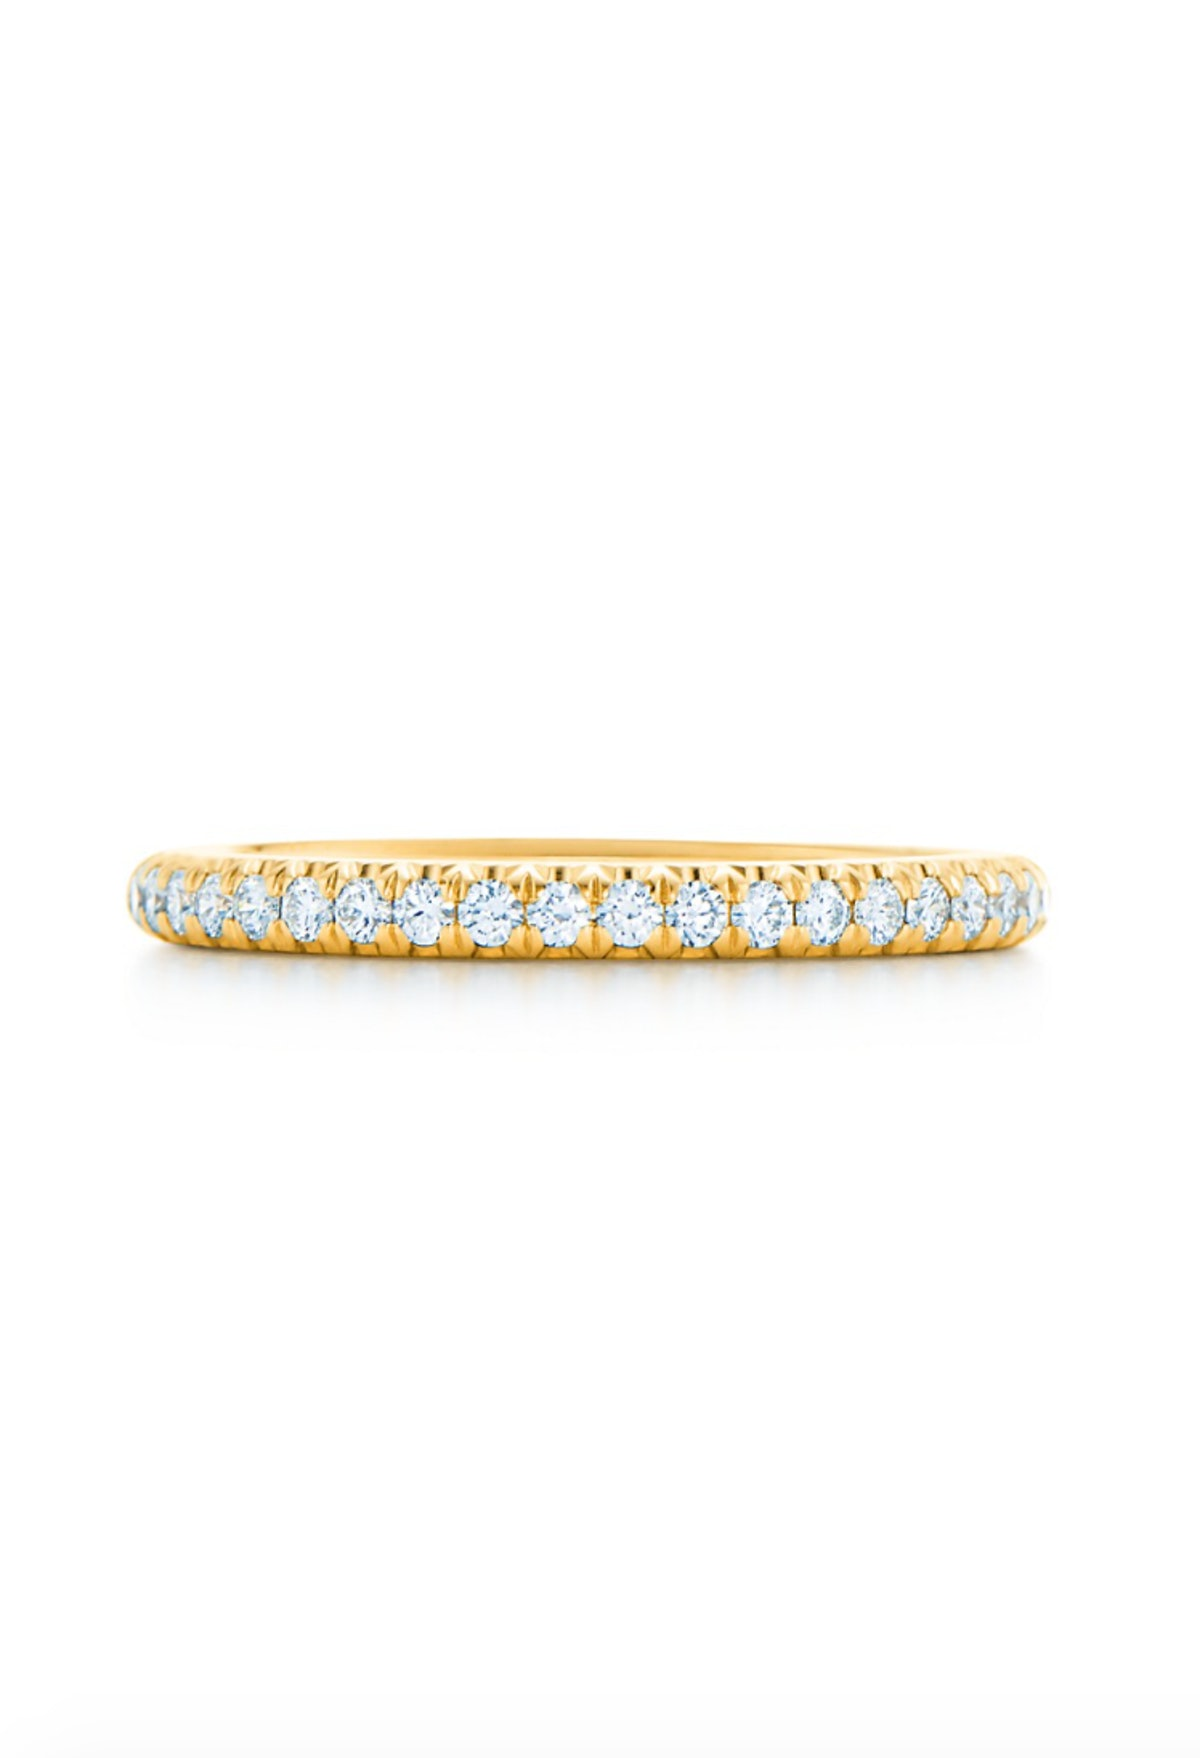 Half Eternity Ring In Yellow Gold With Diamonds